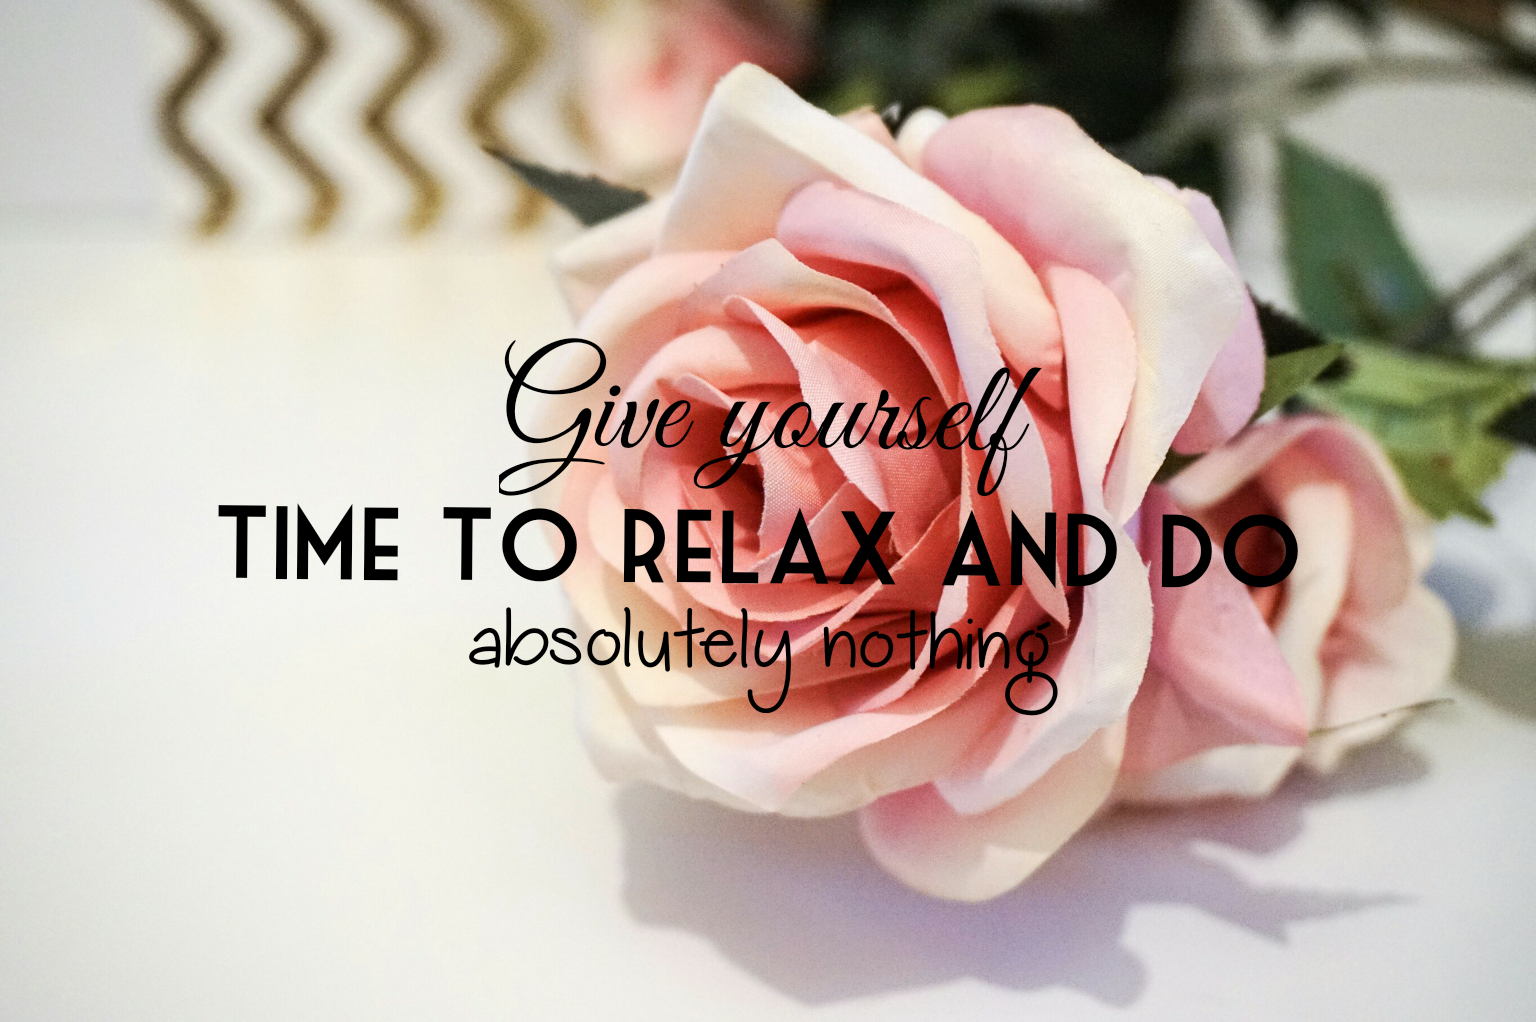 Give yourself time to relax and do absolutely nothing